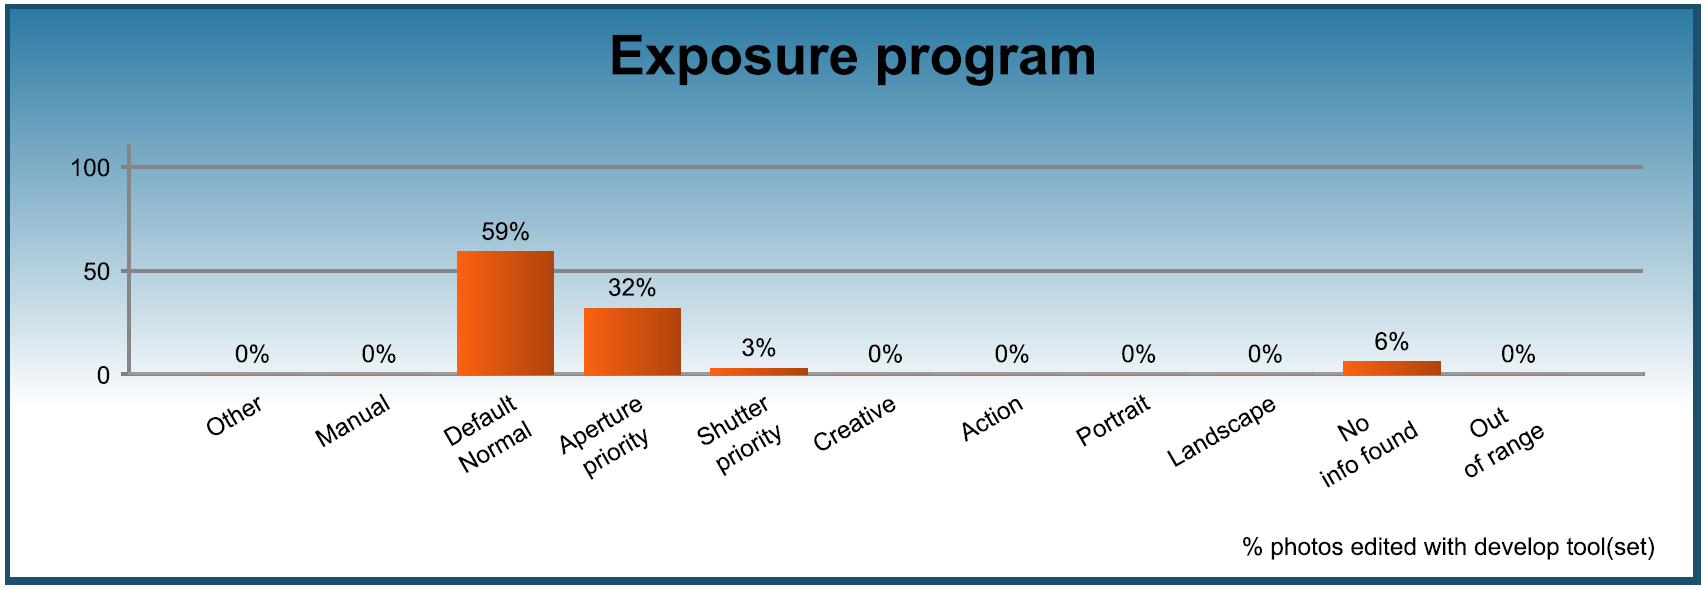 Assessment - Exposure program